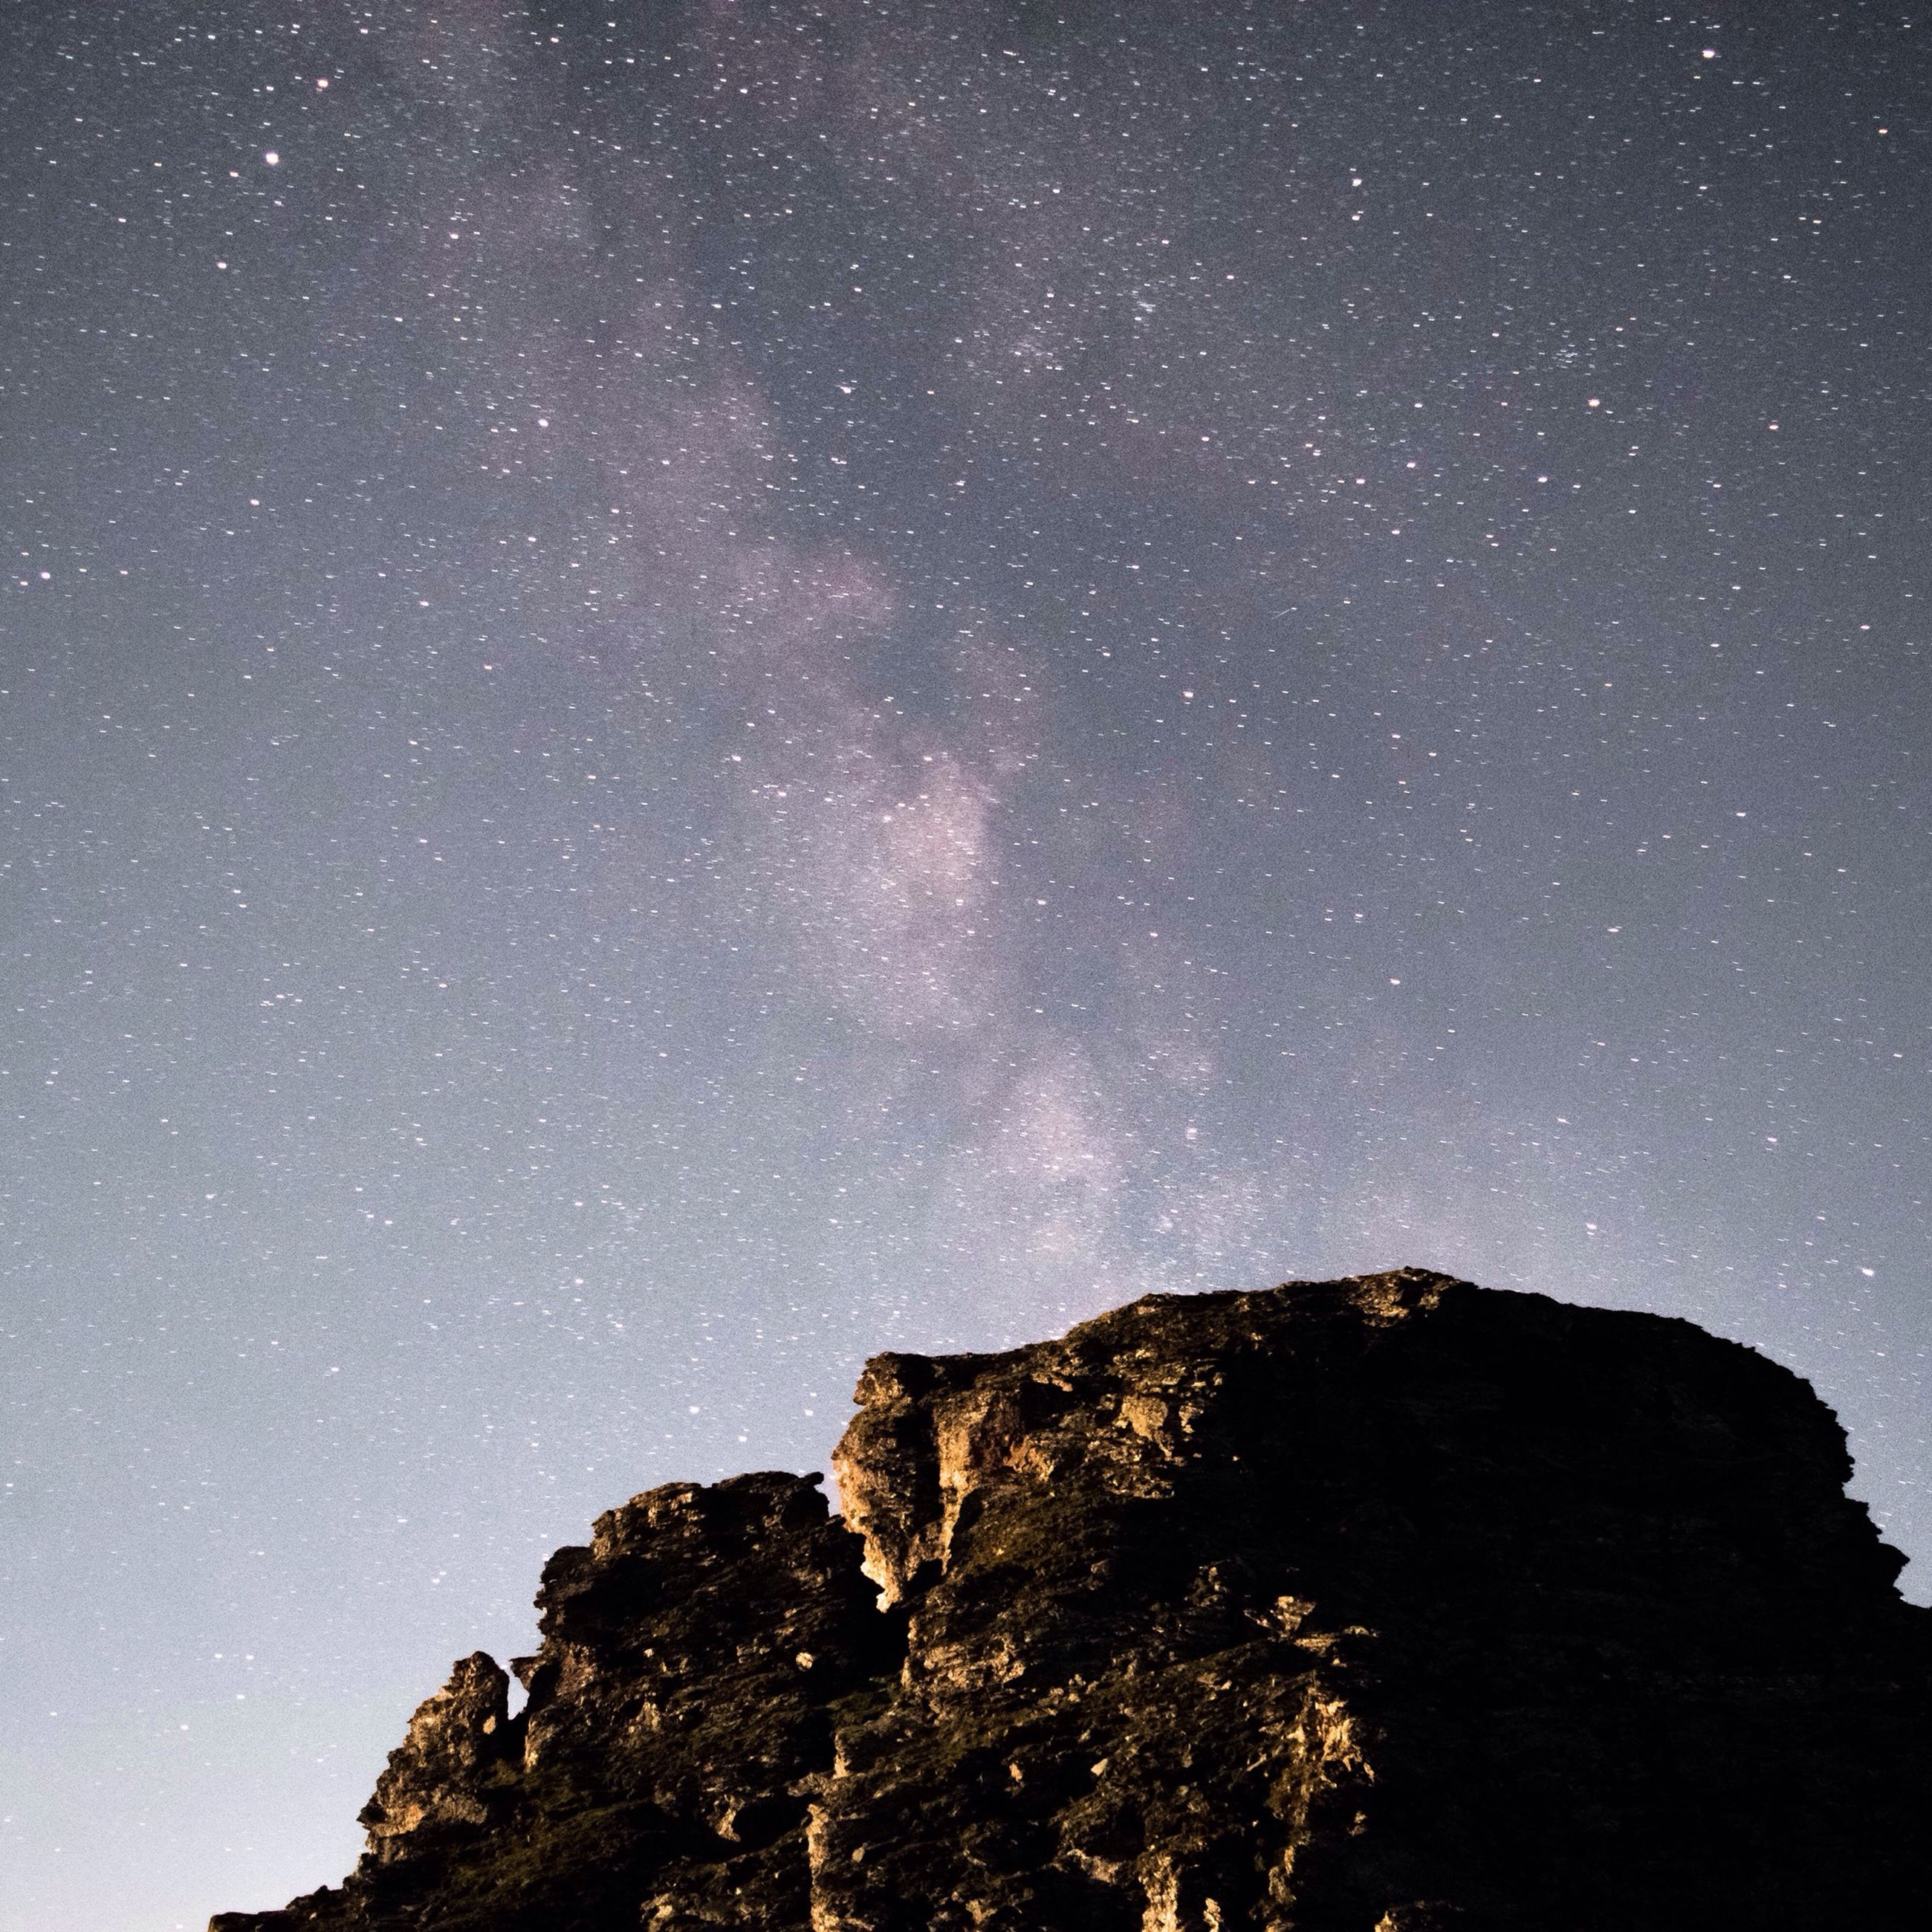 night, star - space, star field, low angle view, astronomy, scenics, tranquil scene, beauty in nature, tranquility, sky, star, nature, galaxy, space, infinity, idyllic, tree, milky way, majestic, rock formation